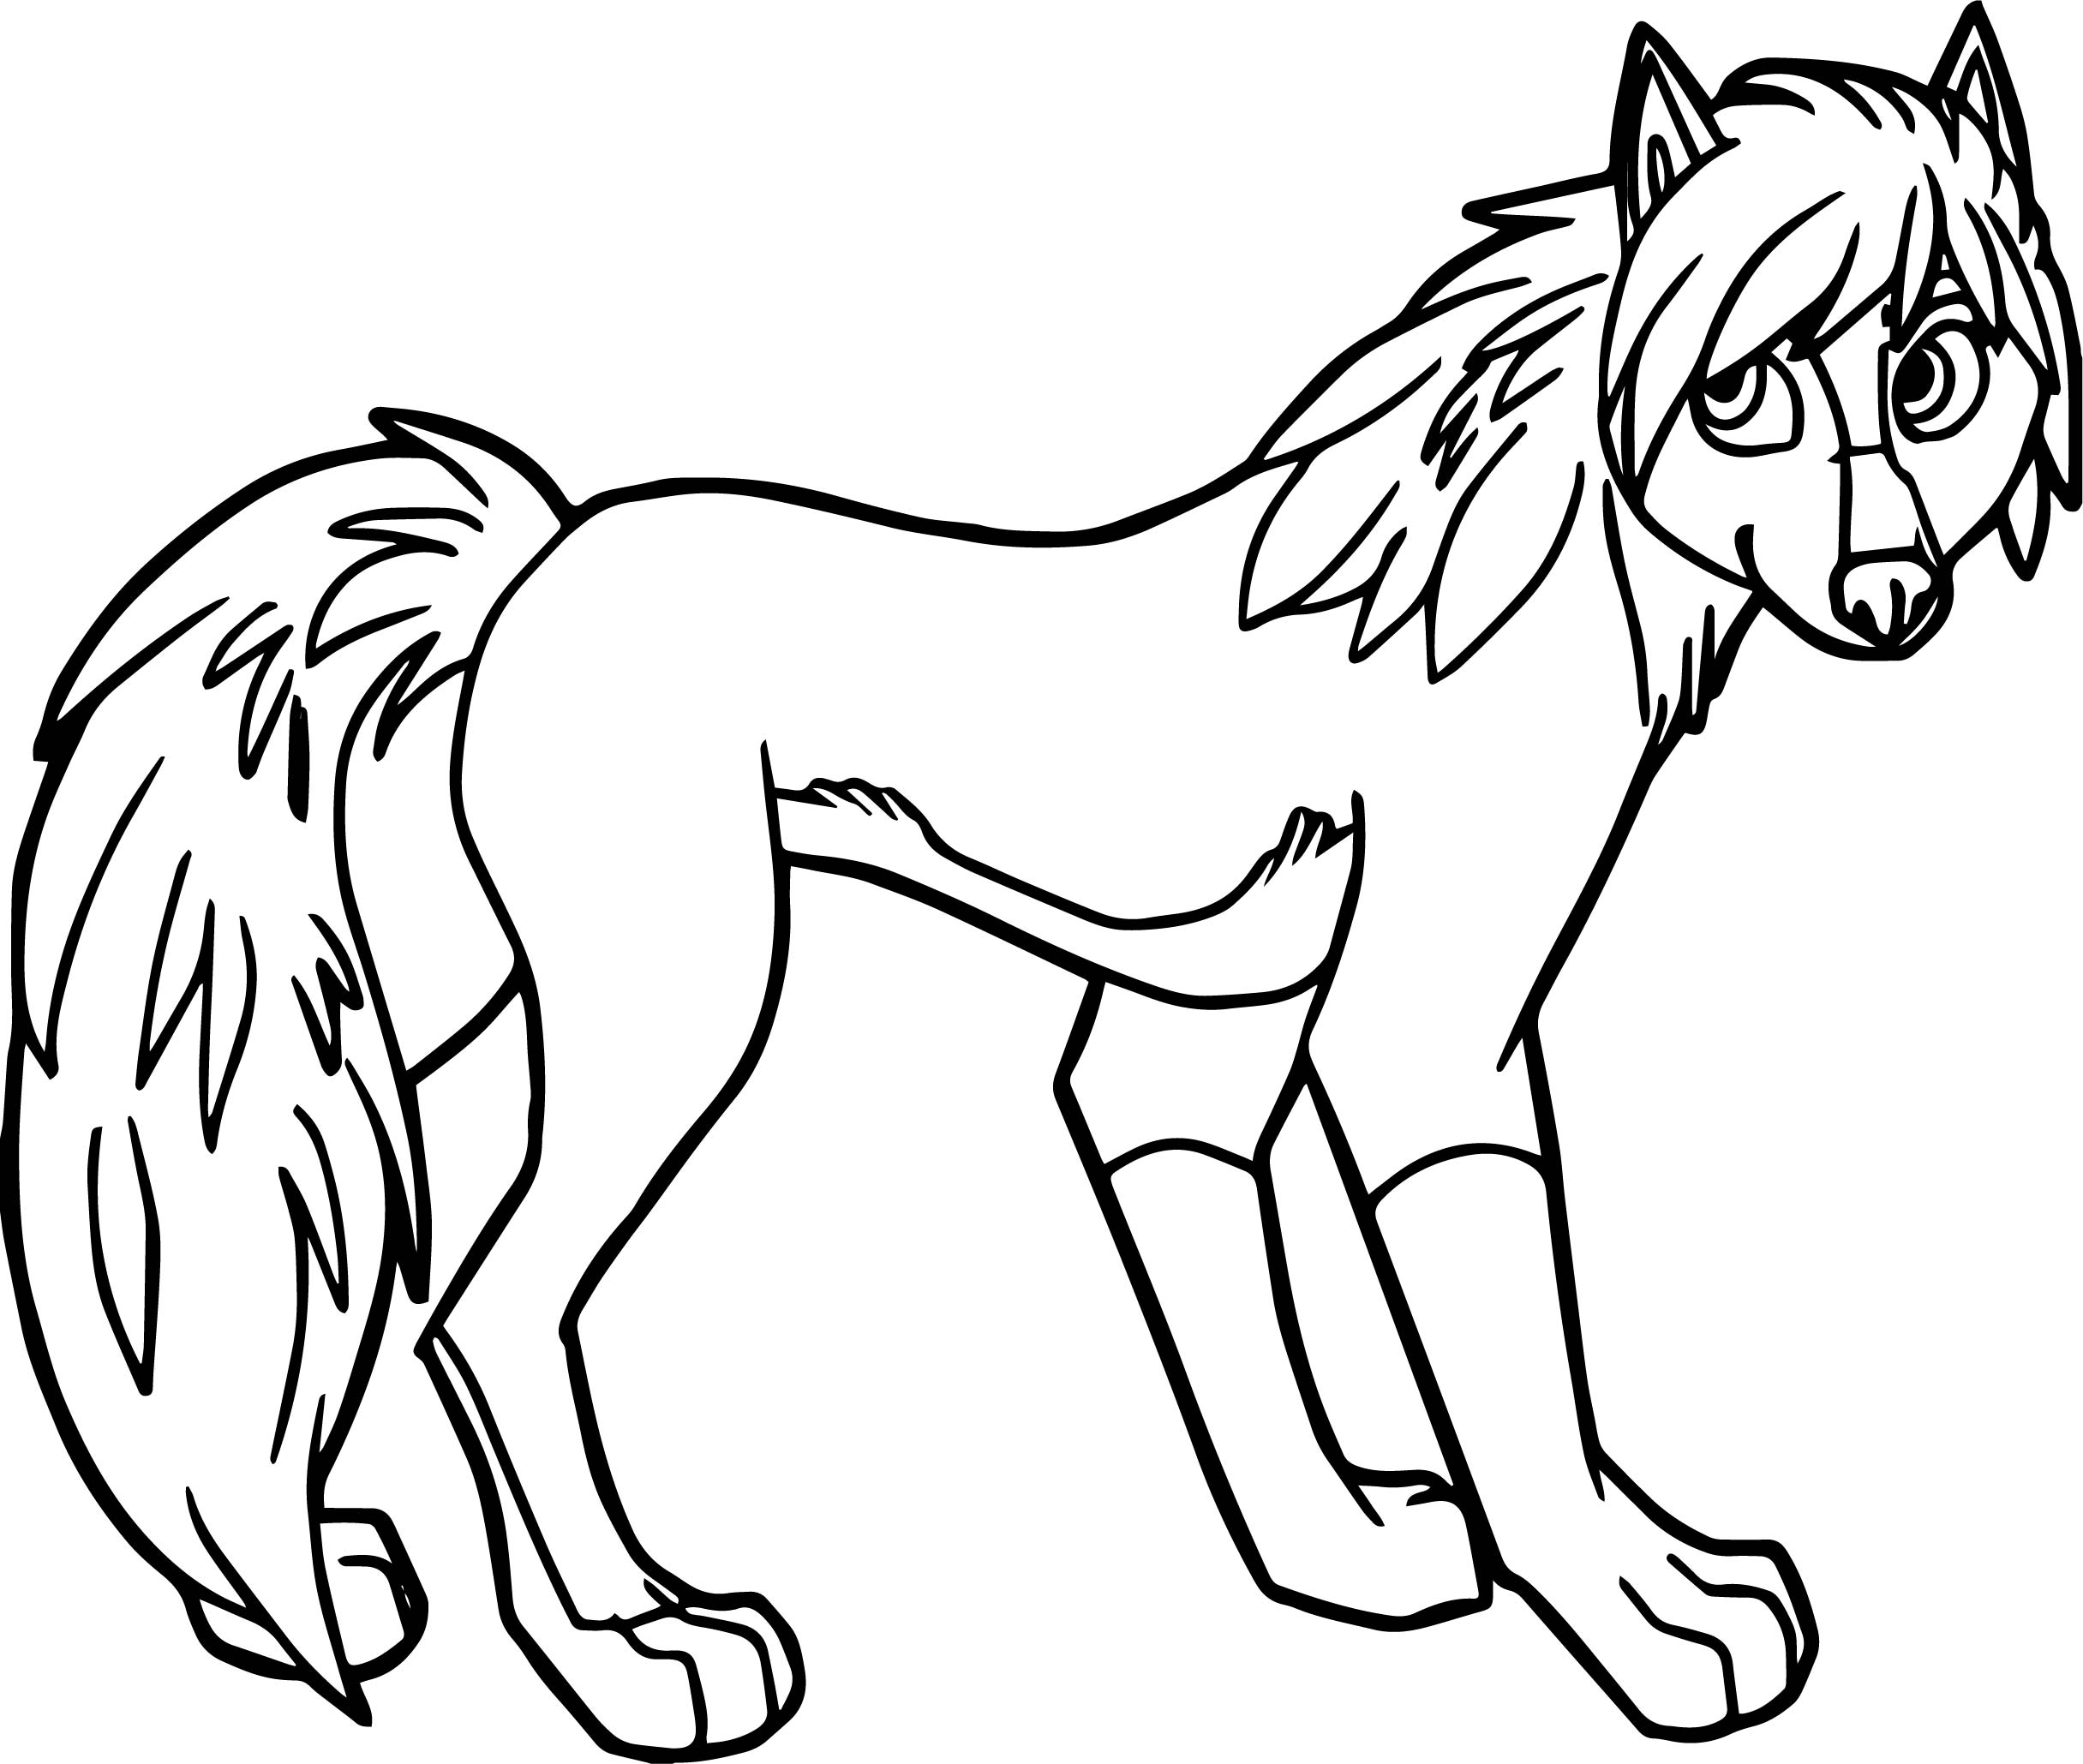 wolf coloring pages - alpha and omega wolf girl coloring page